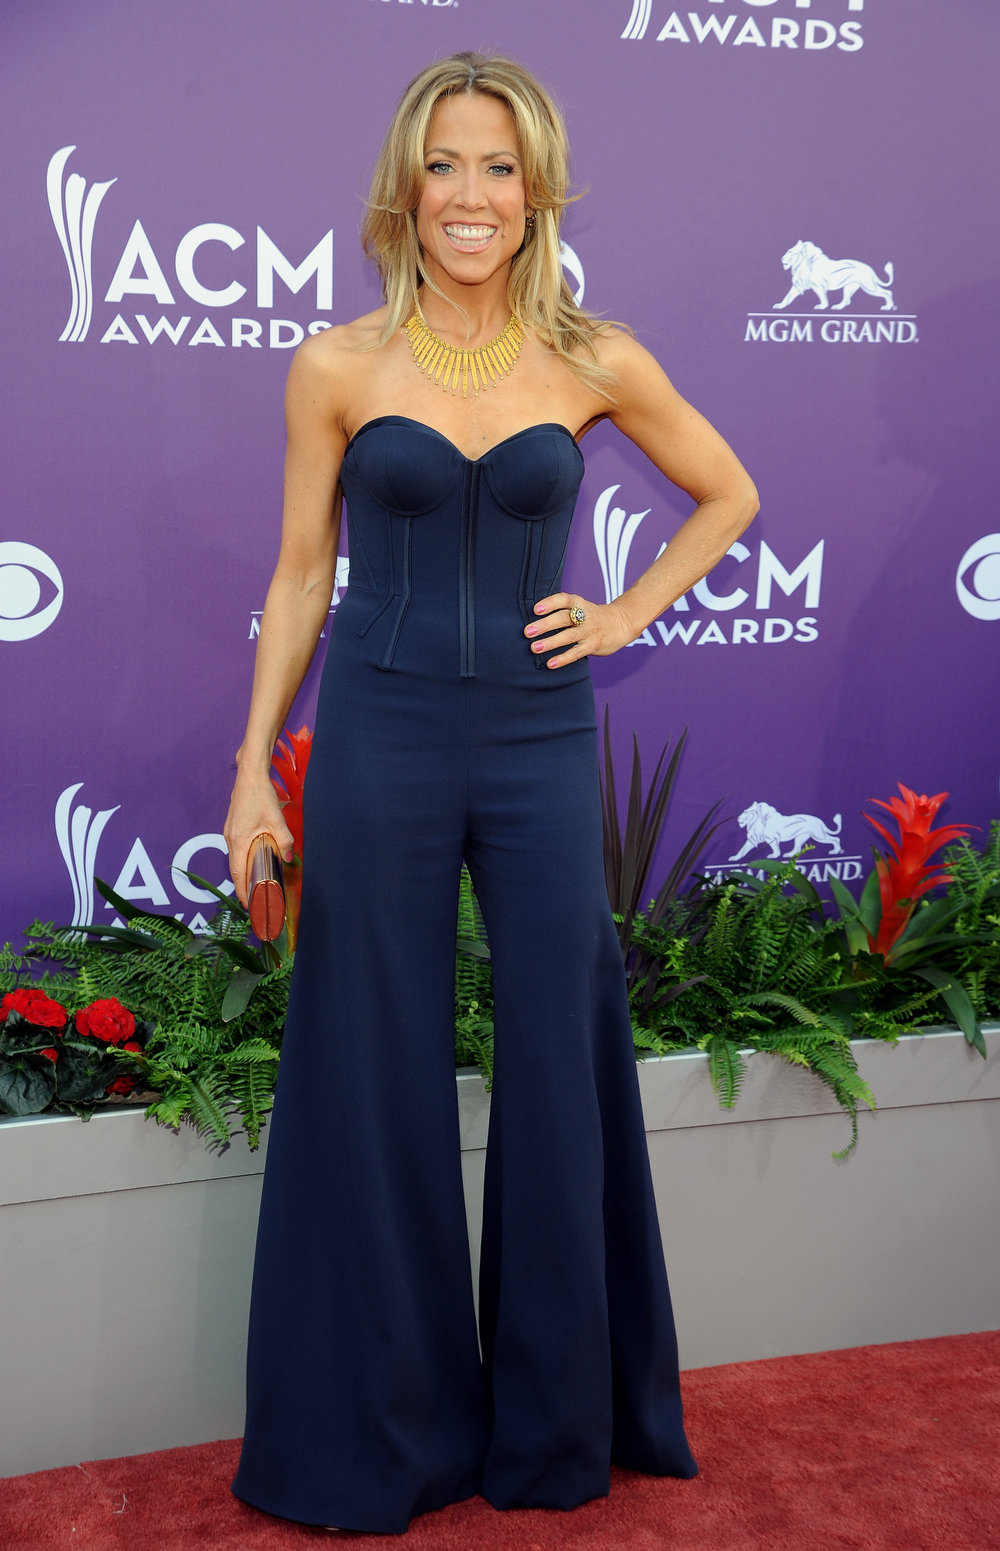 . Singer Sheryl Crow arrives at the 48th Annual Academy of Country Music Awards at the MGM Grand Garden Arena in Las Vegas on Sunday, April 7, 2013. (Photo by Al Powers/Invision/AP)